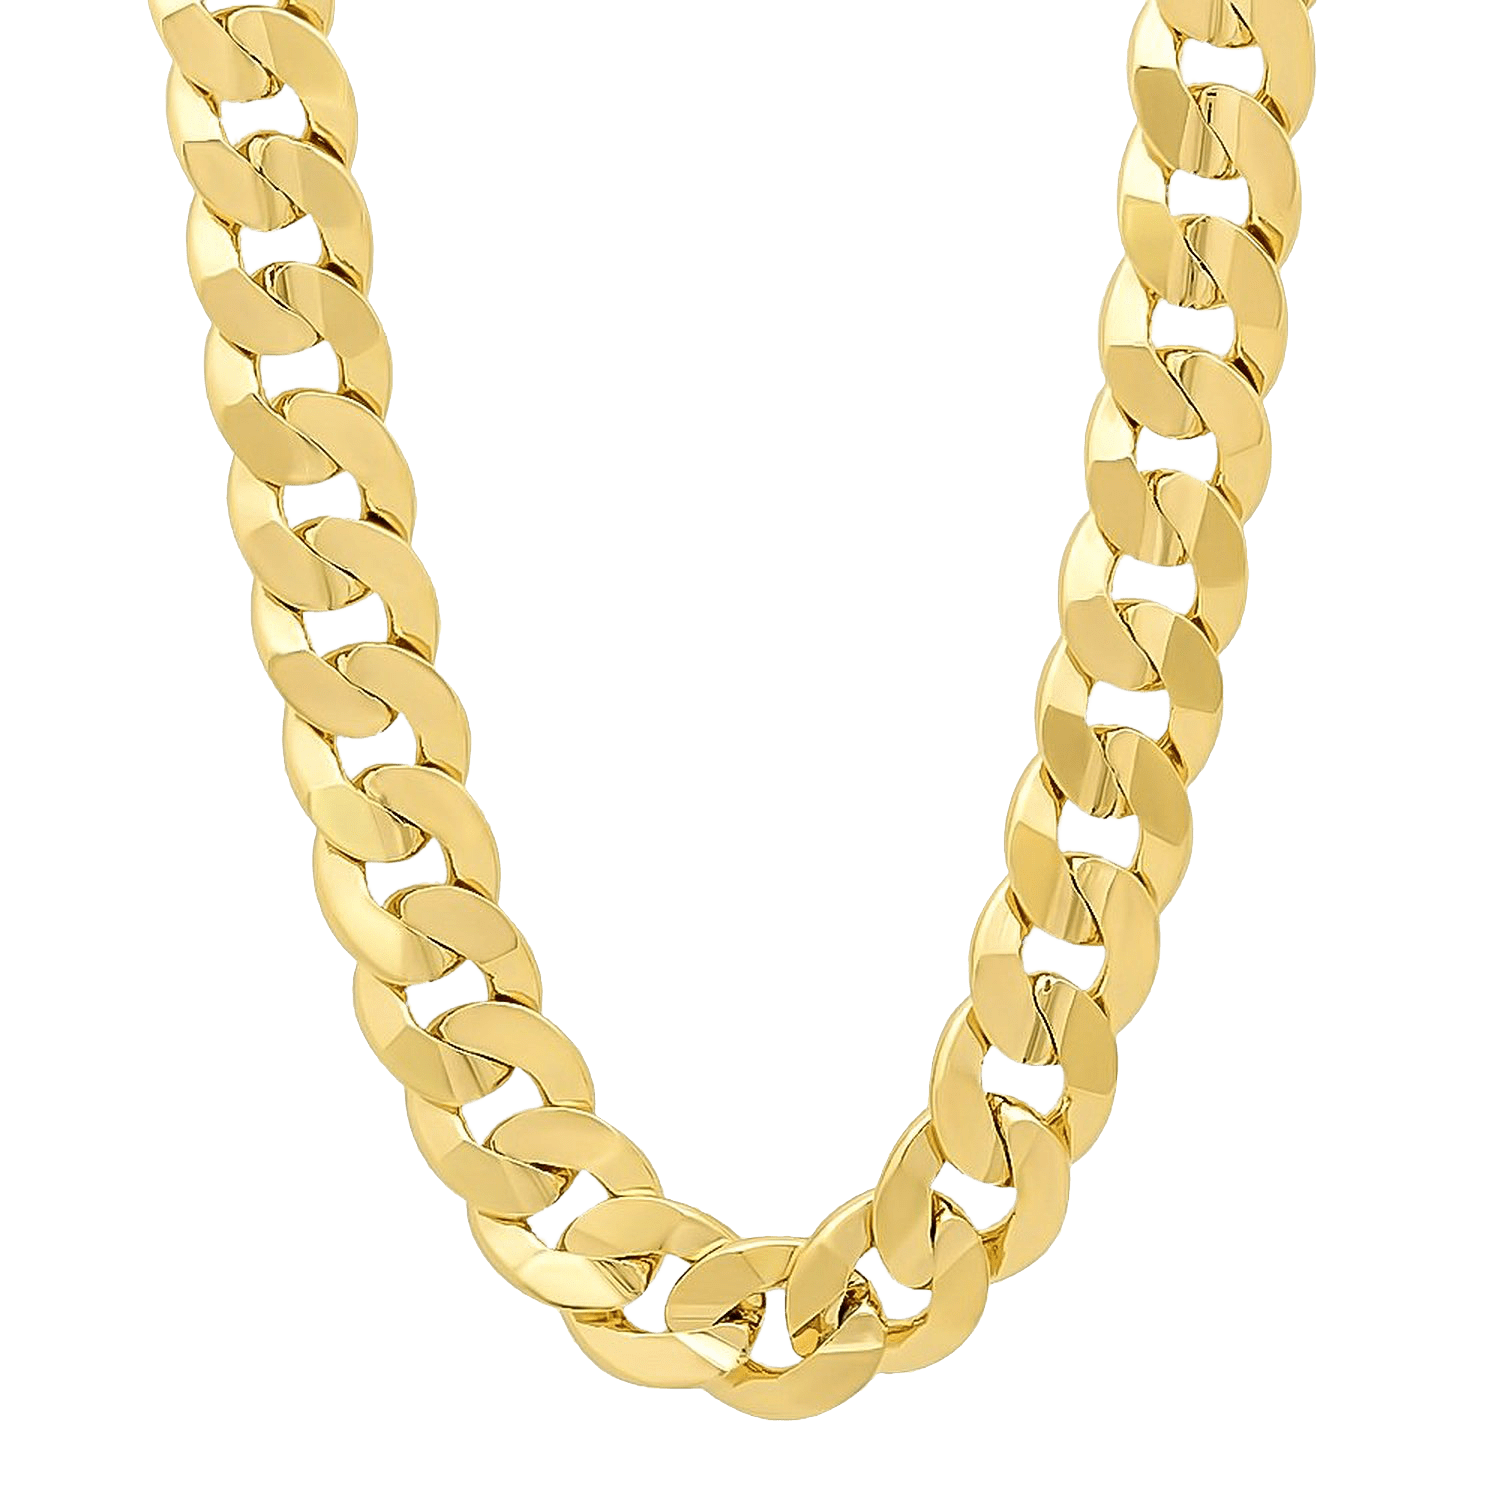 Bling chain png